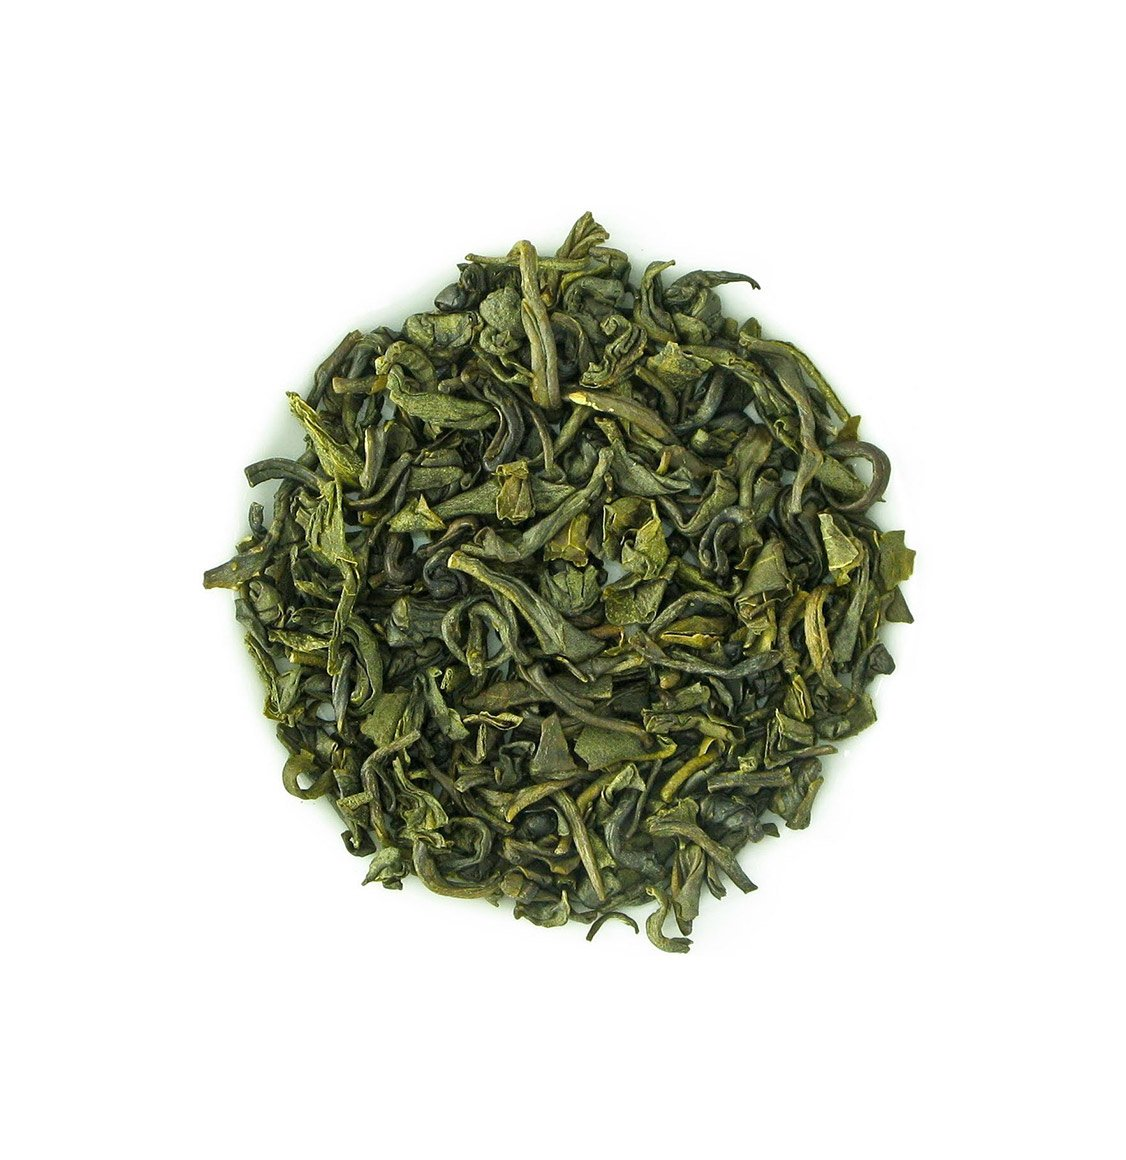 Kusmi Tea Almond Green Tea 125g